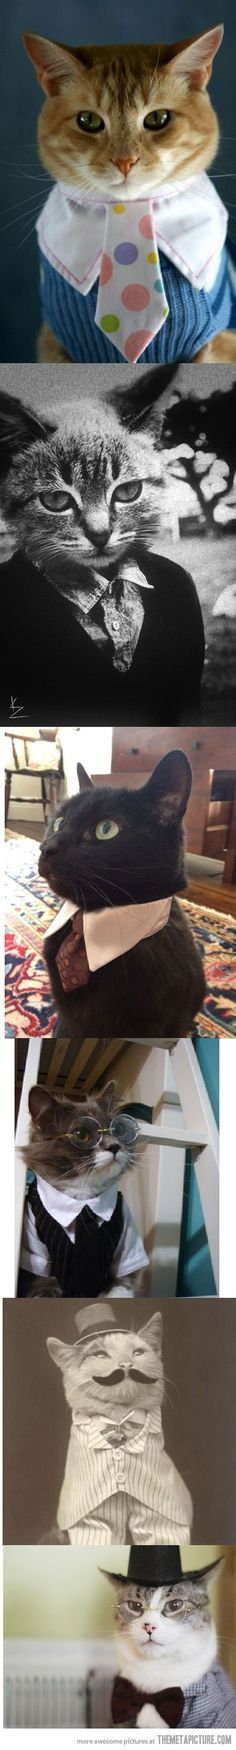 Who doesn't love a cat in a tie?